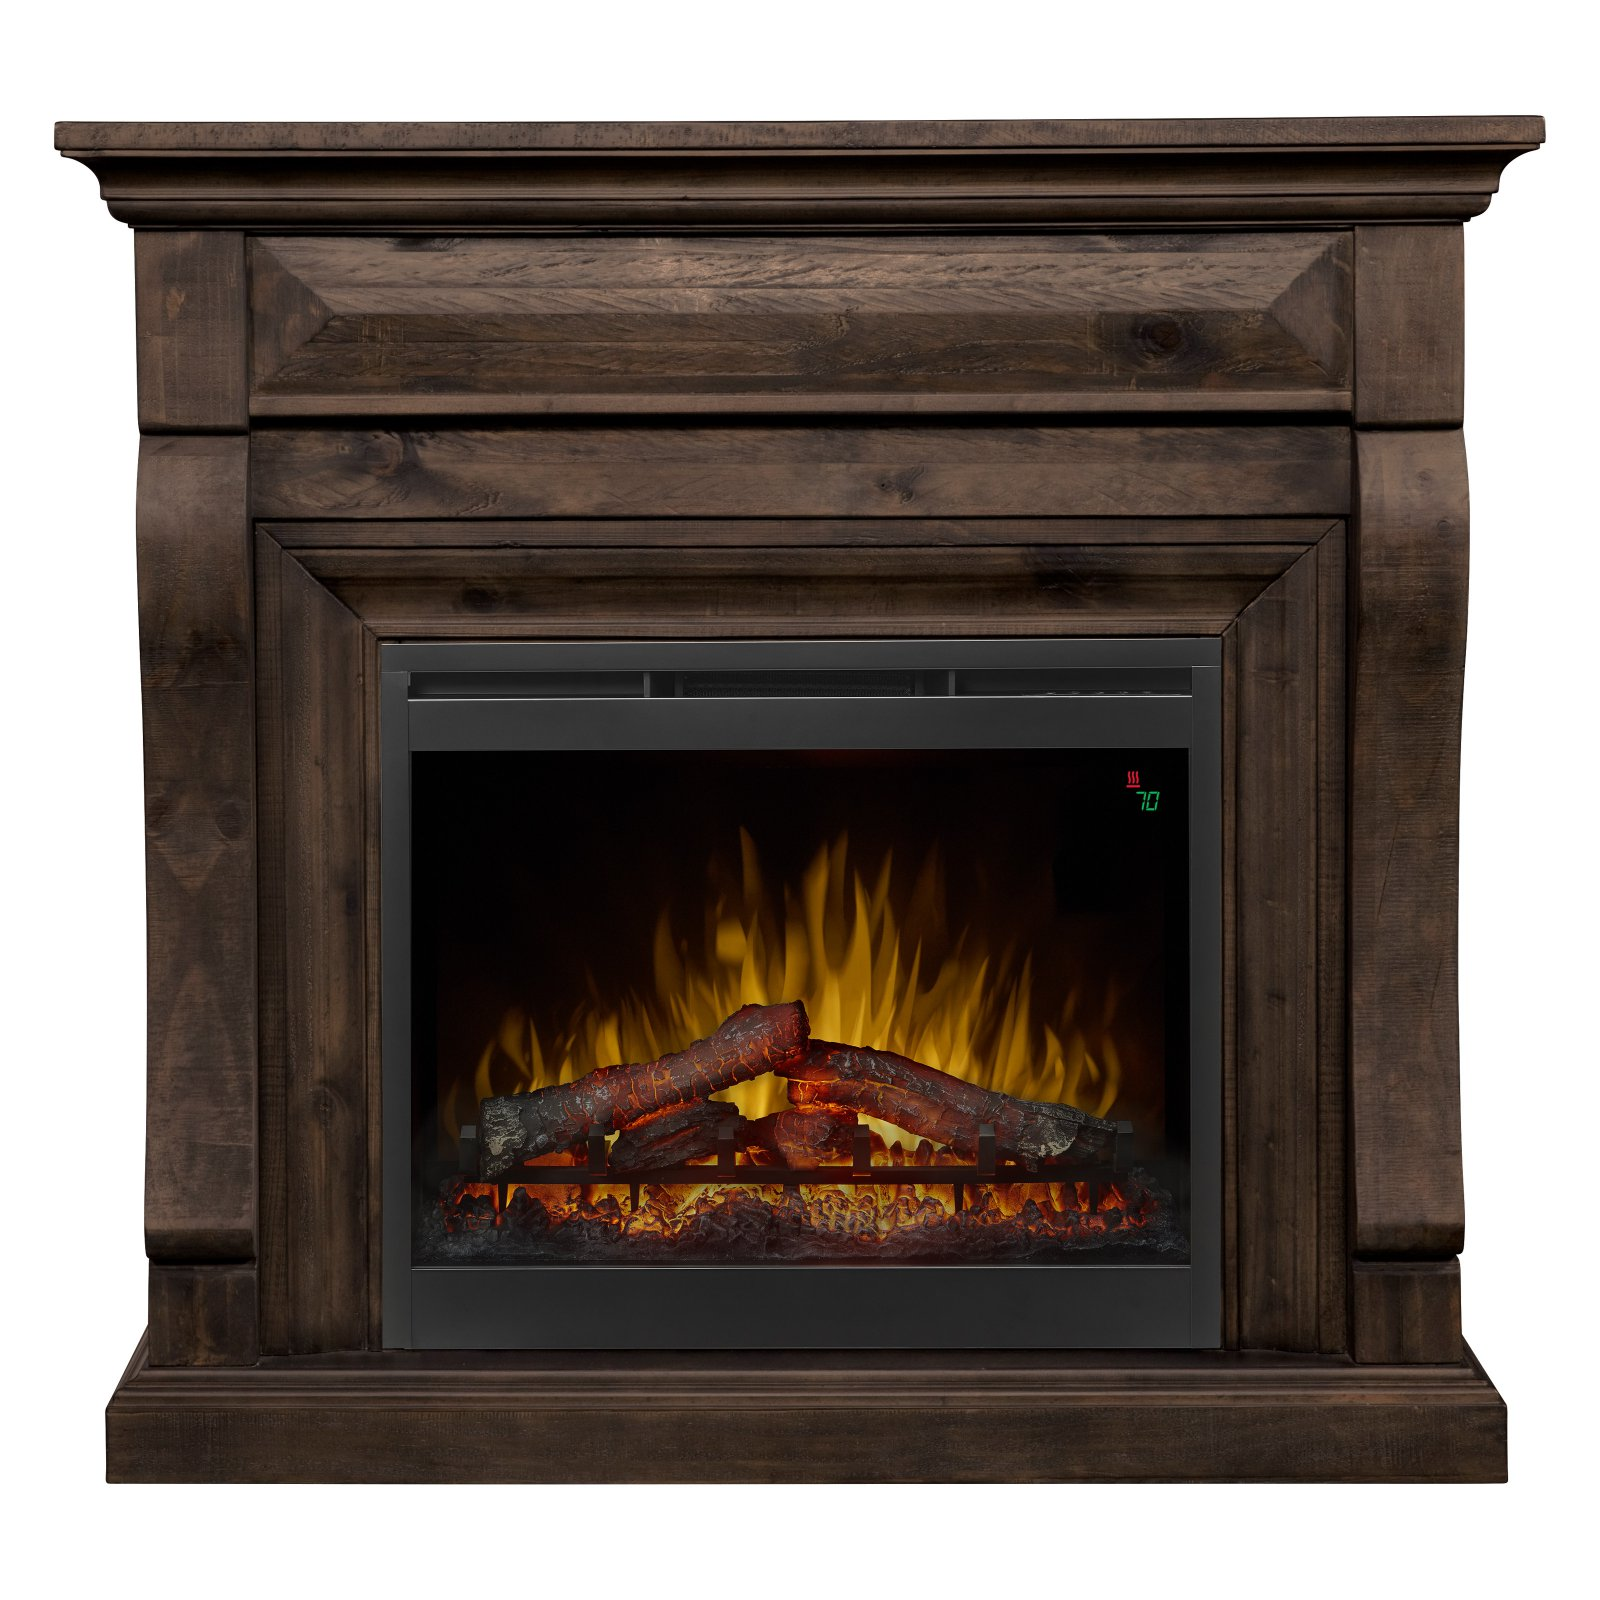 Dimplex Samuel Mantel Electric Fireplace With Logs, Weathered Grey